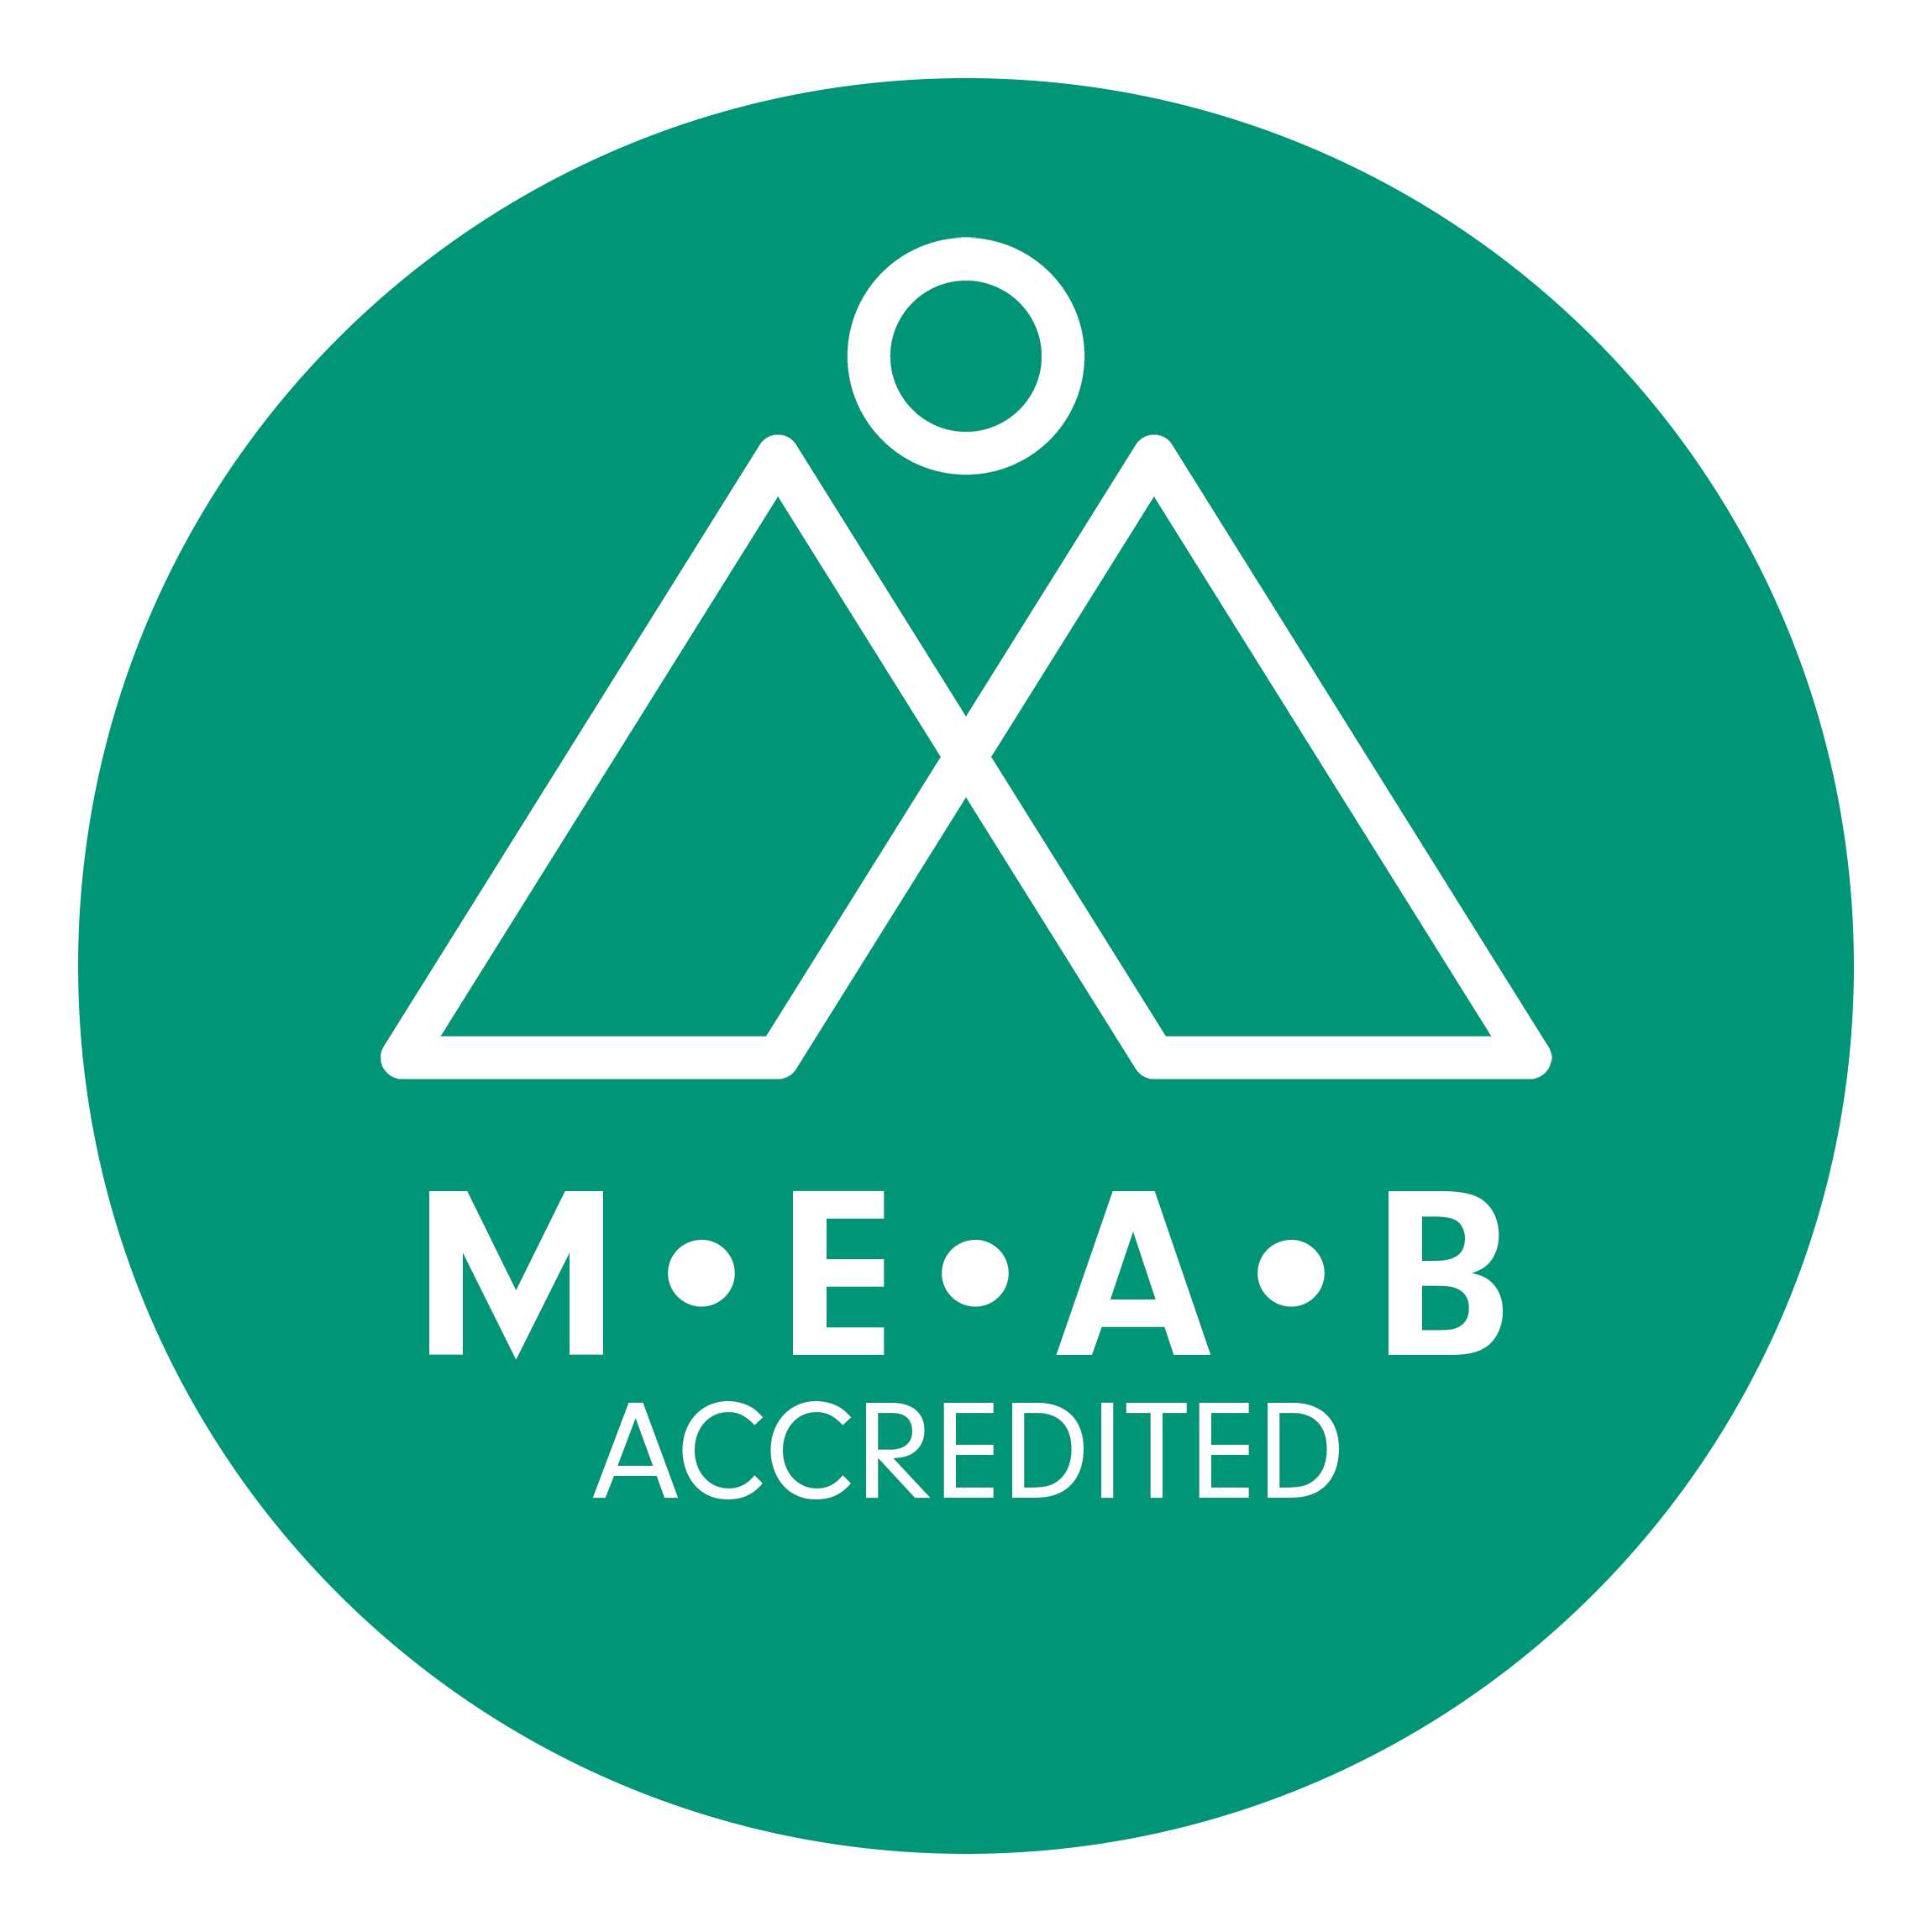 Footprints MEAB Accredited to 2021